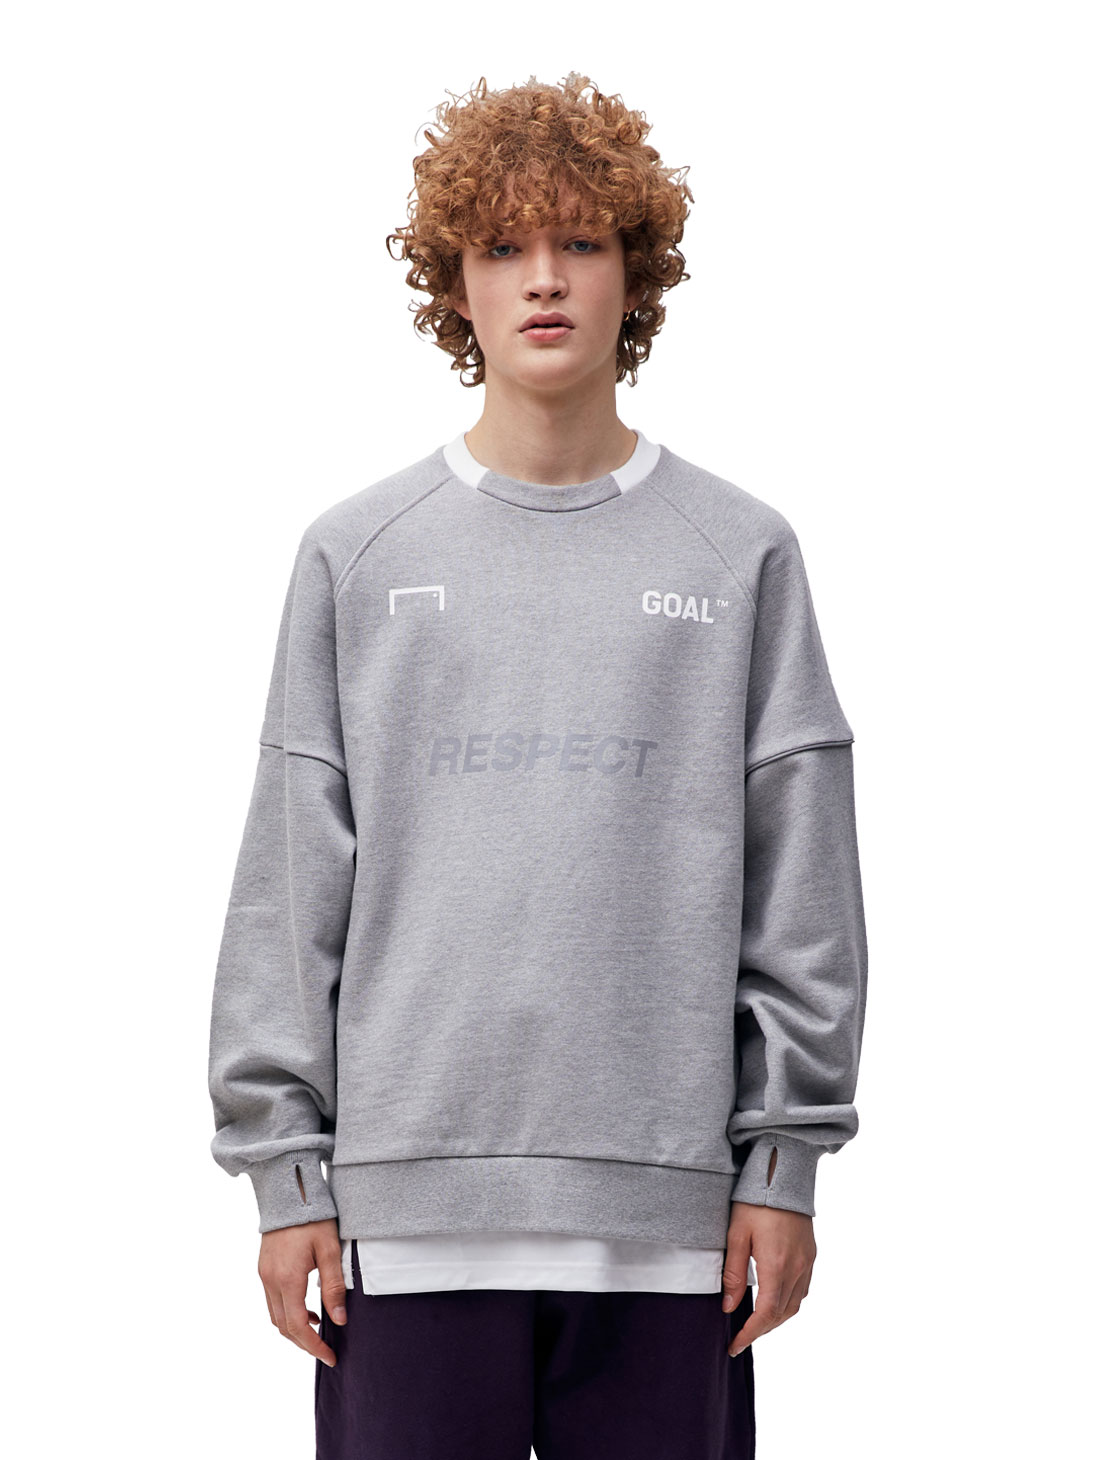 RESPECT SWEATSHIRT - GREY